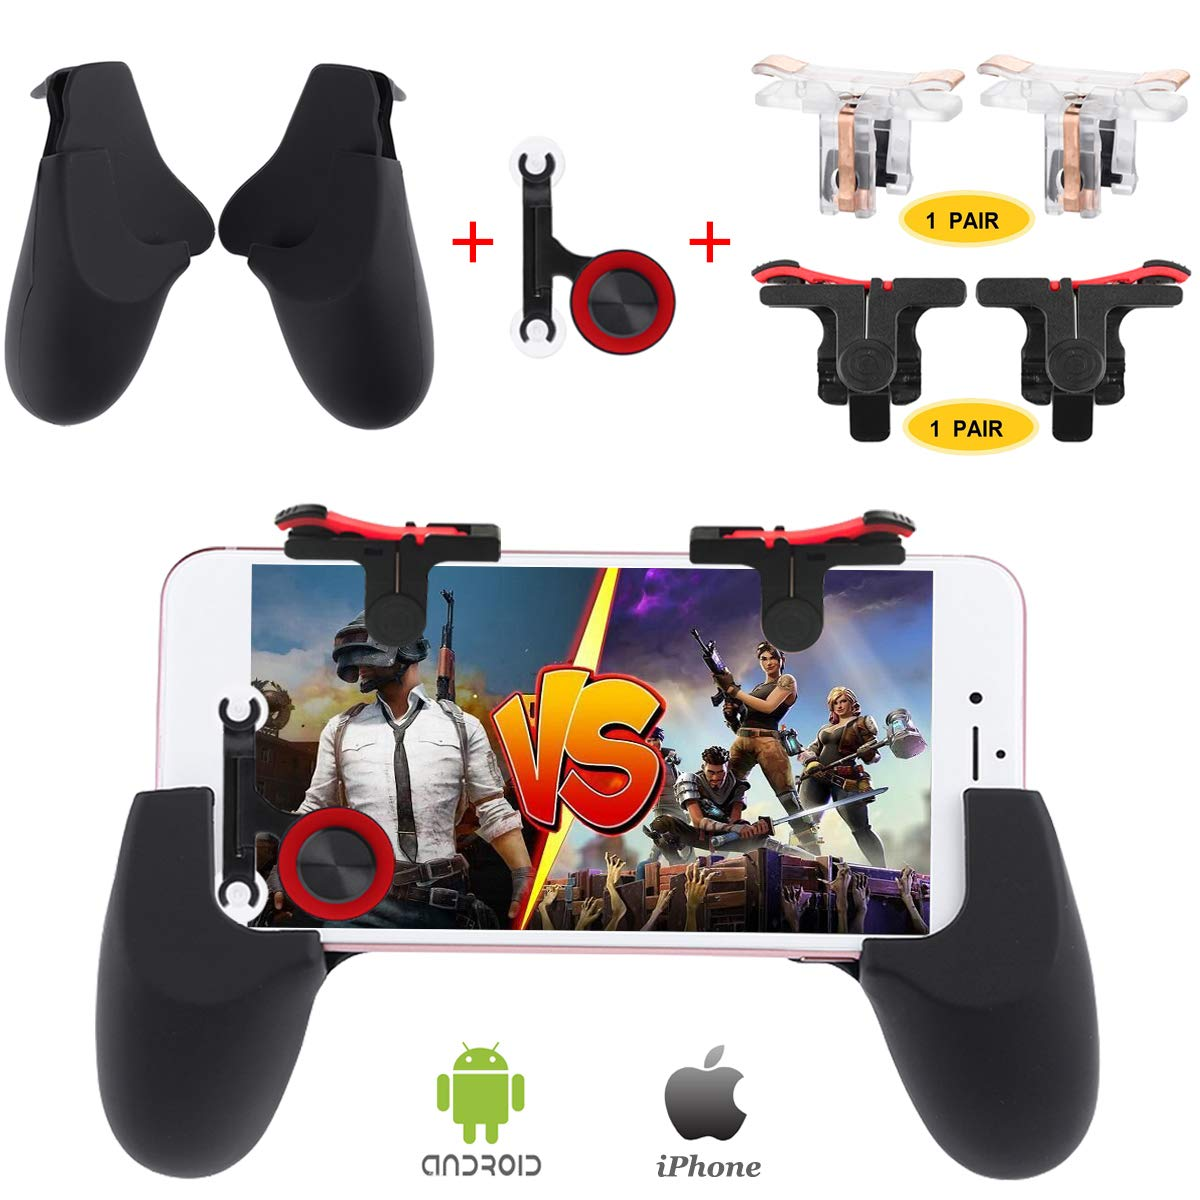 Fortnite PUBG Mobile Controller, Papakoyal PUBG Mobile Trigger Mobile Game Controller Sensitive Shoot and Aim Keys L1R1 Mobile Joystick for PUBG/Fornite/Knives Out... [4 Triggers+2 Gamepads+1 Joystick] Papakoyal direct